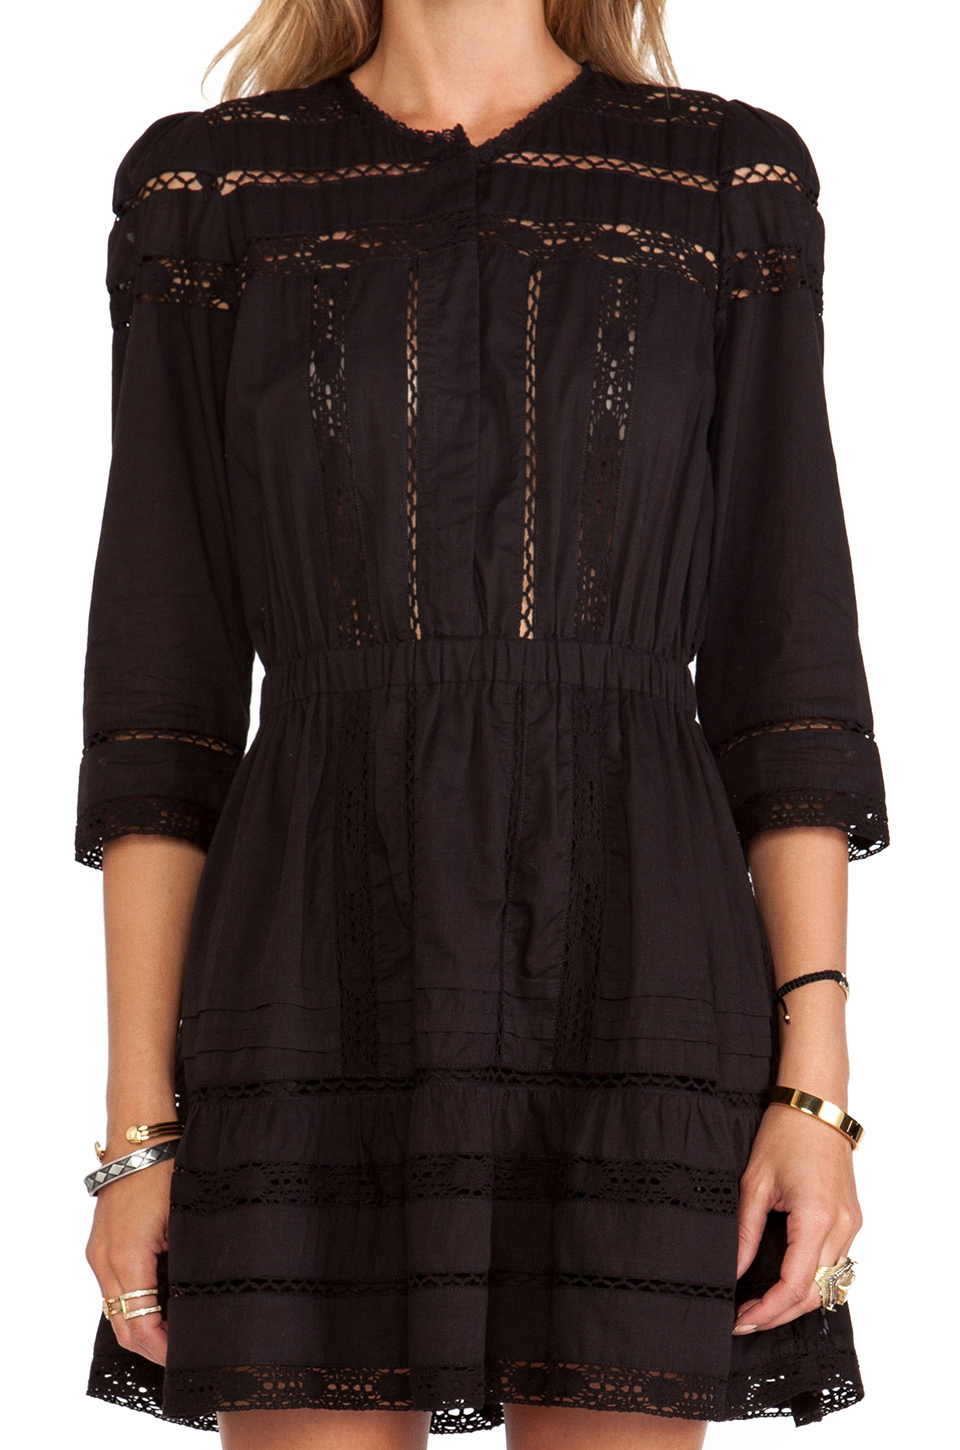 Tularosa Payton Dress in Black from REVOLVEclothing.com